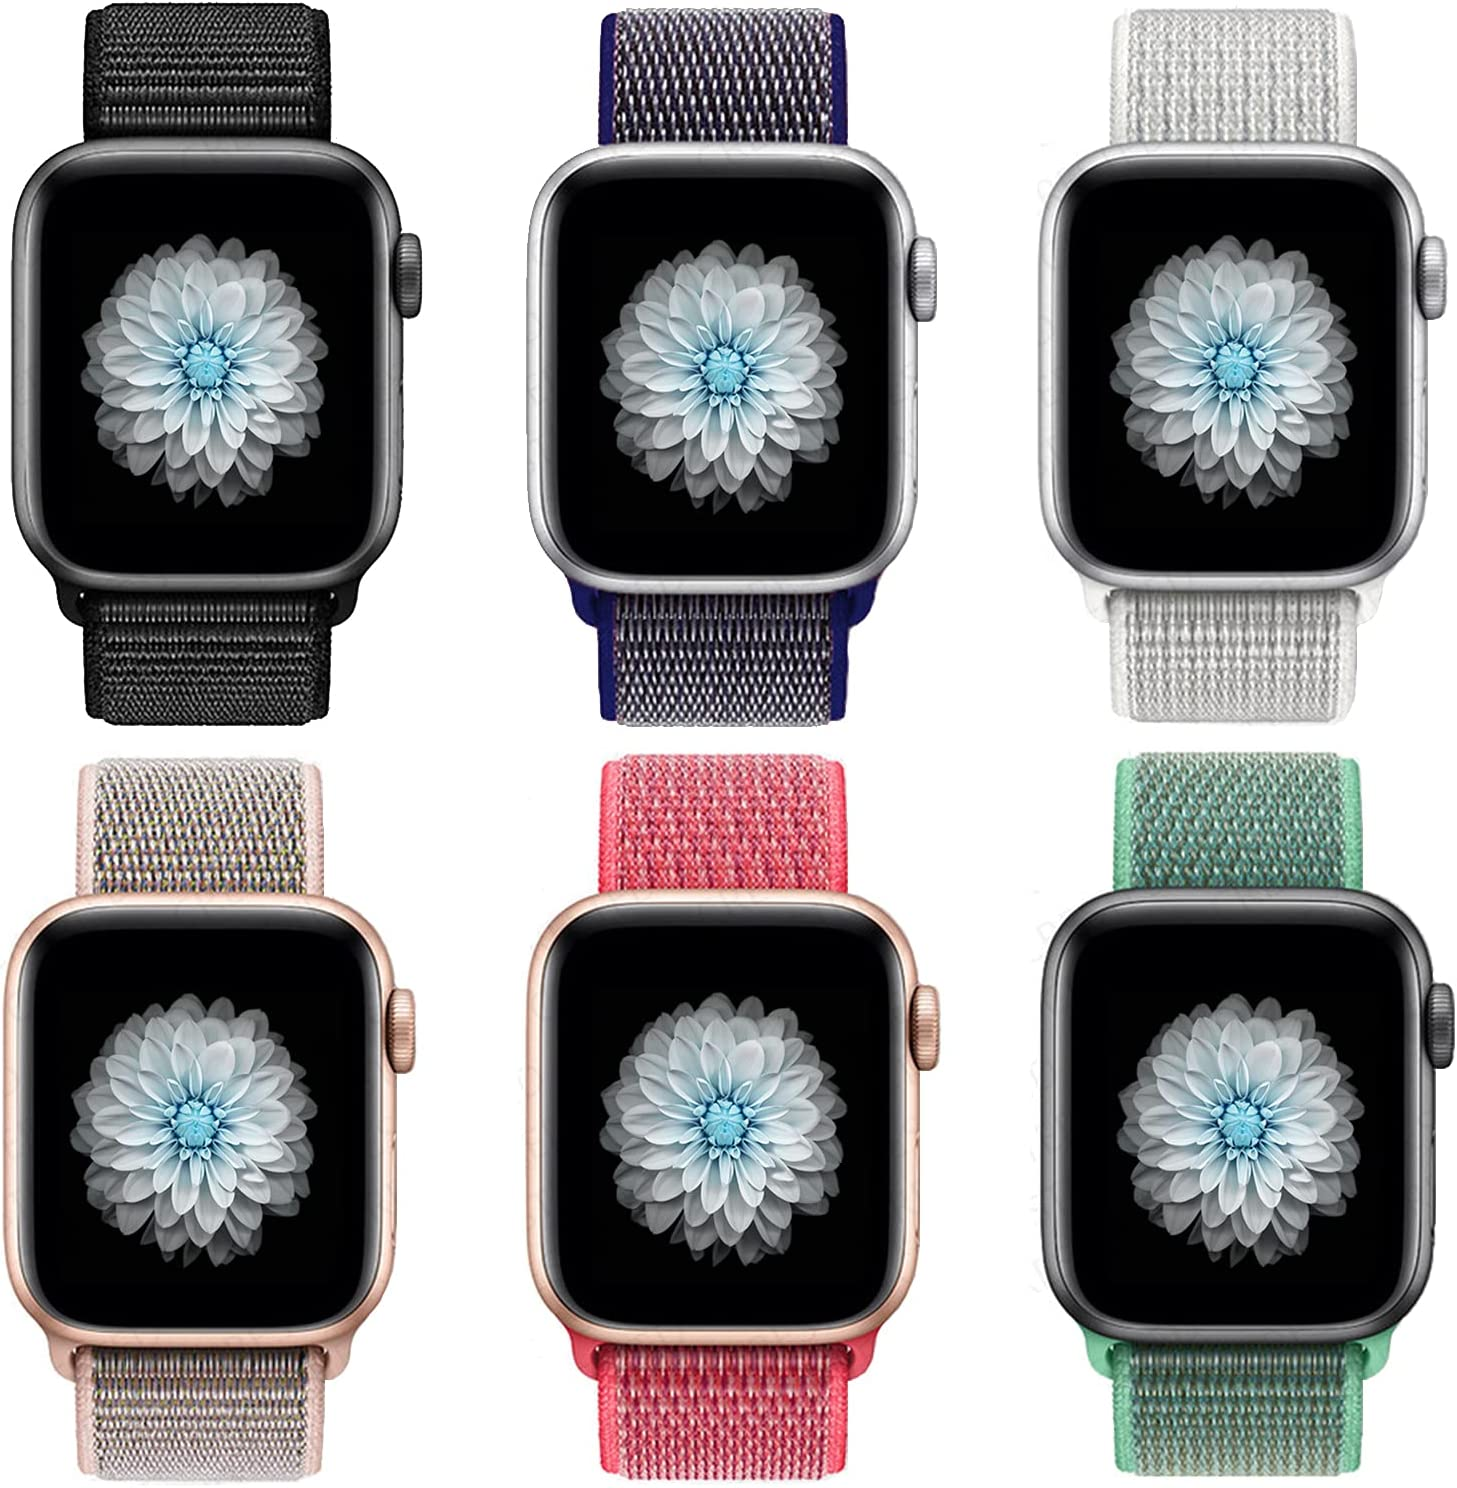 HEJINYU Compatible with Apple Watch Band 38mm 40mm 42mm 44mm, Soft Breathable Lightweight Bracelet Replacement Wrist Strap Compatible with iWatch Series 6 5 4 3 2 1 SE